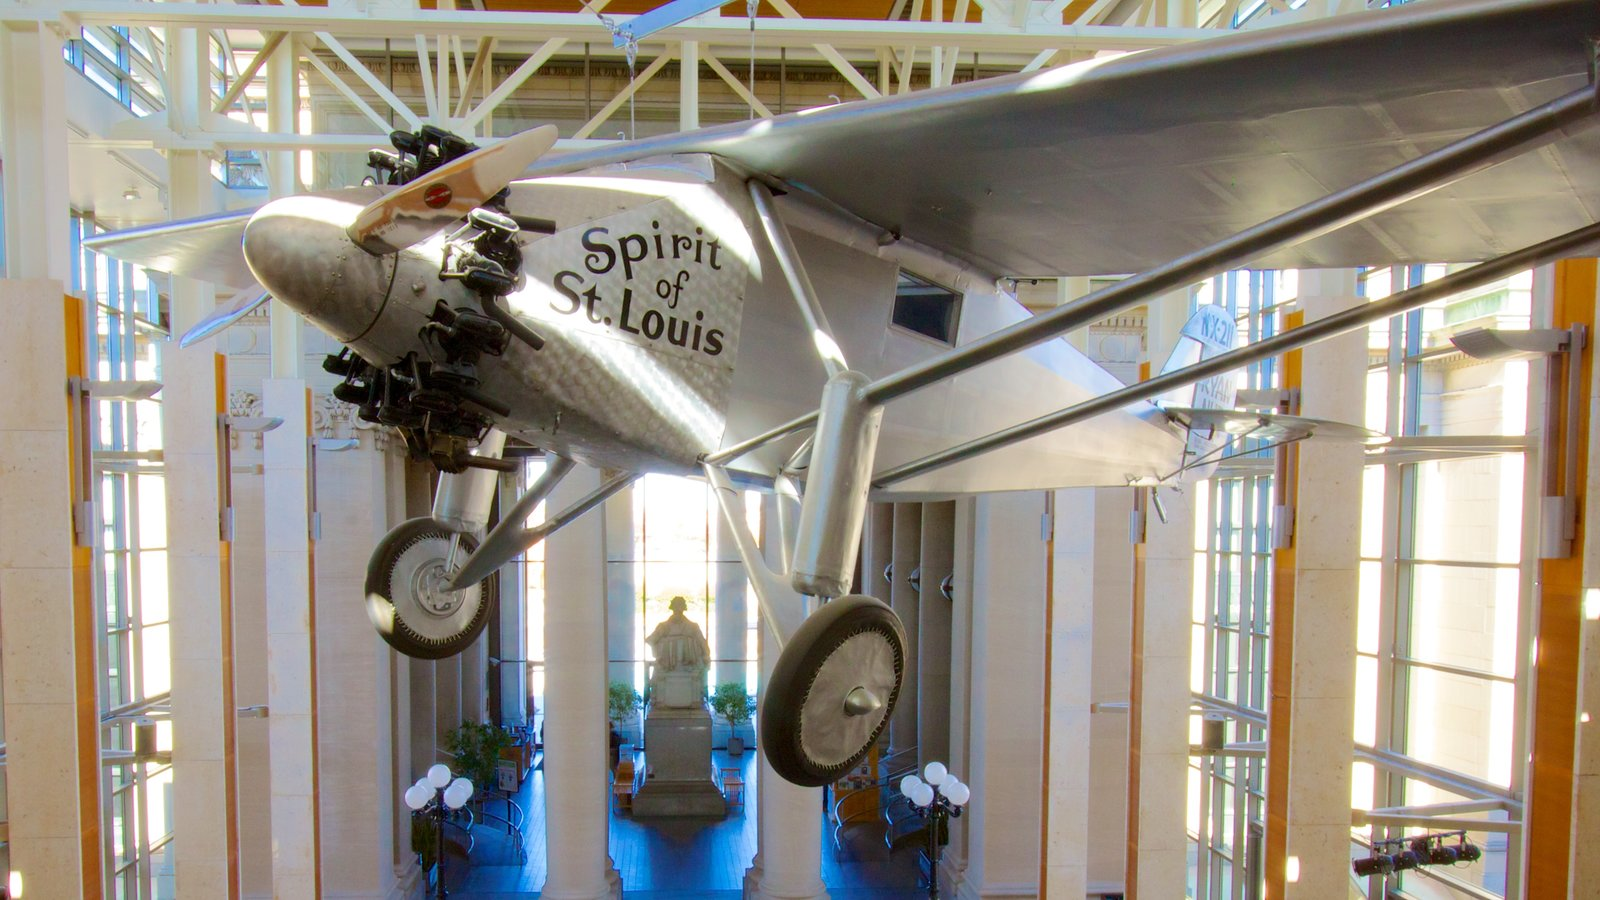 Missouri History Museum showing interior views and aircraft